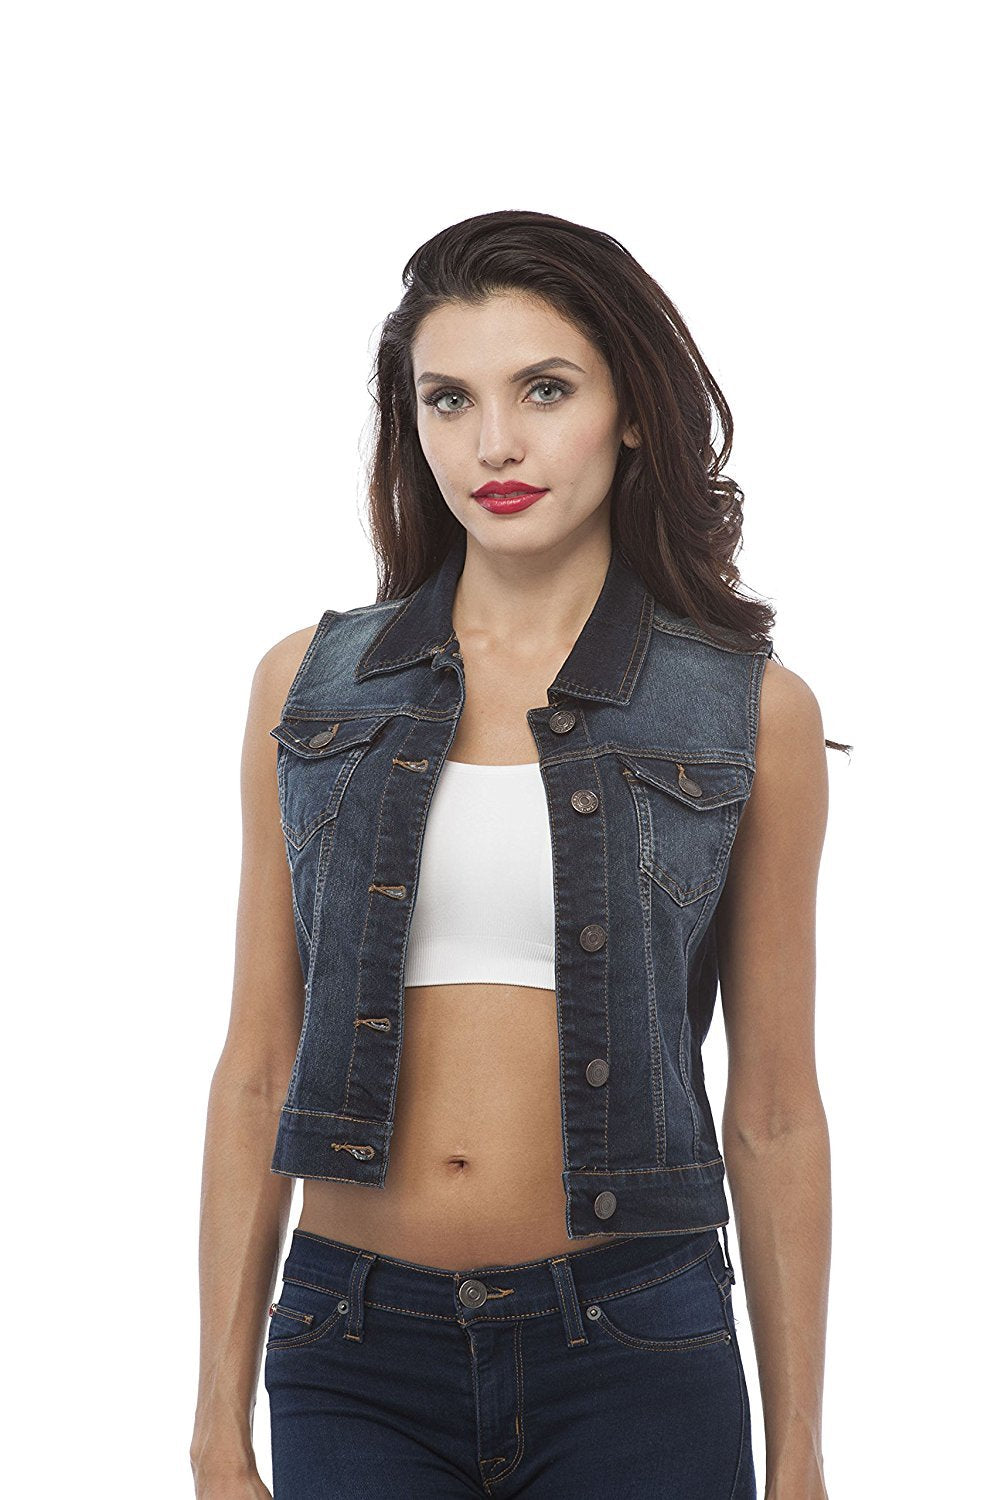 Hollywood Star Fashion Sleeveless Button Up Jean Denim Jacket Vest